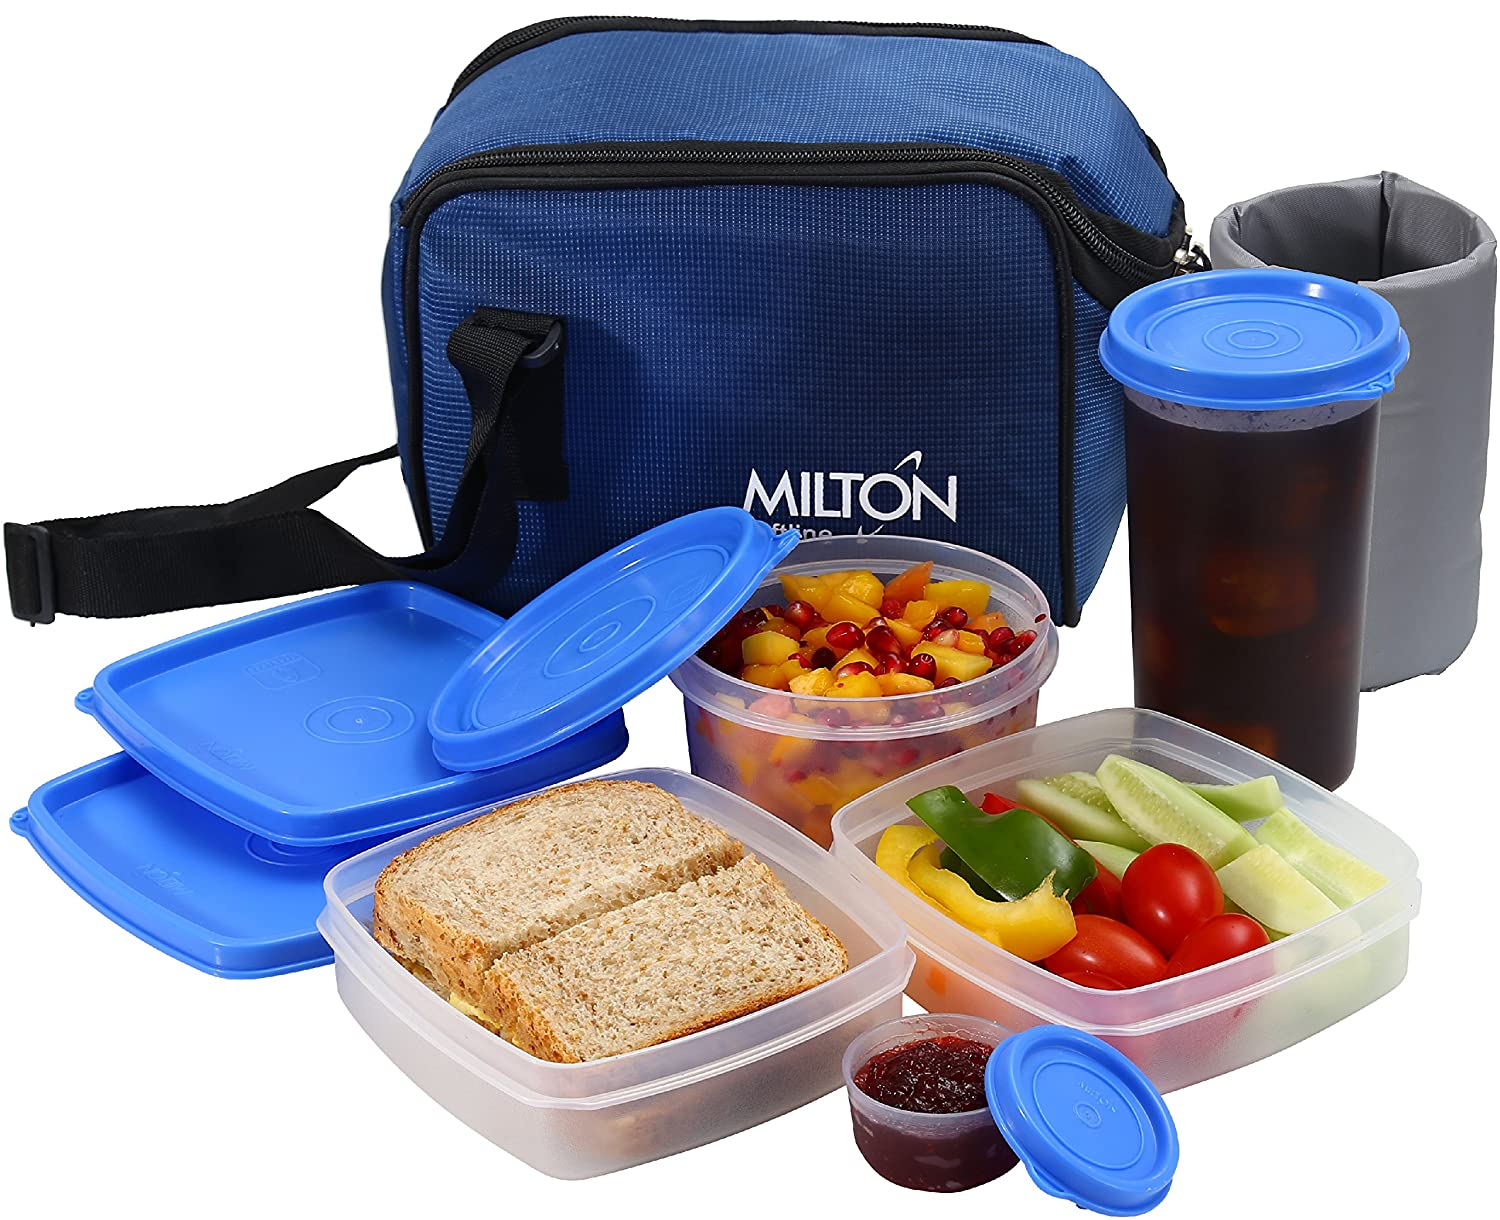 Insulated Lunch Bag Box Kit, Milton 5 Pc Set, Adults Men Women, Leakproof Airtight Containers Cooler Tote with Adjustable Shoulder Strap for Work School and Travel - Blue